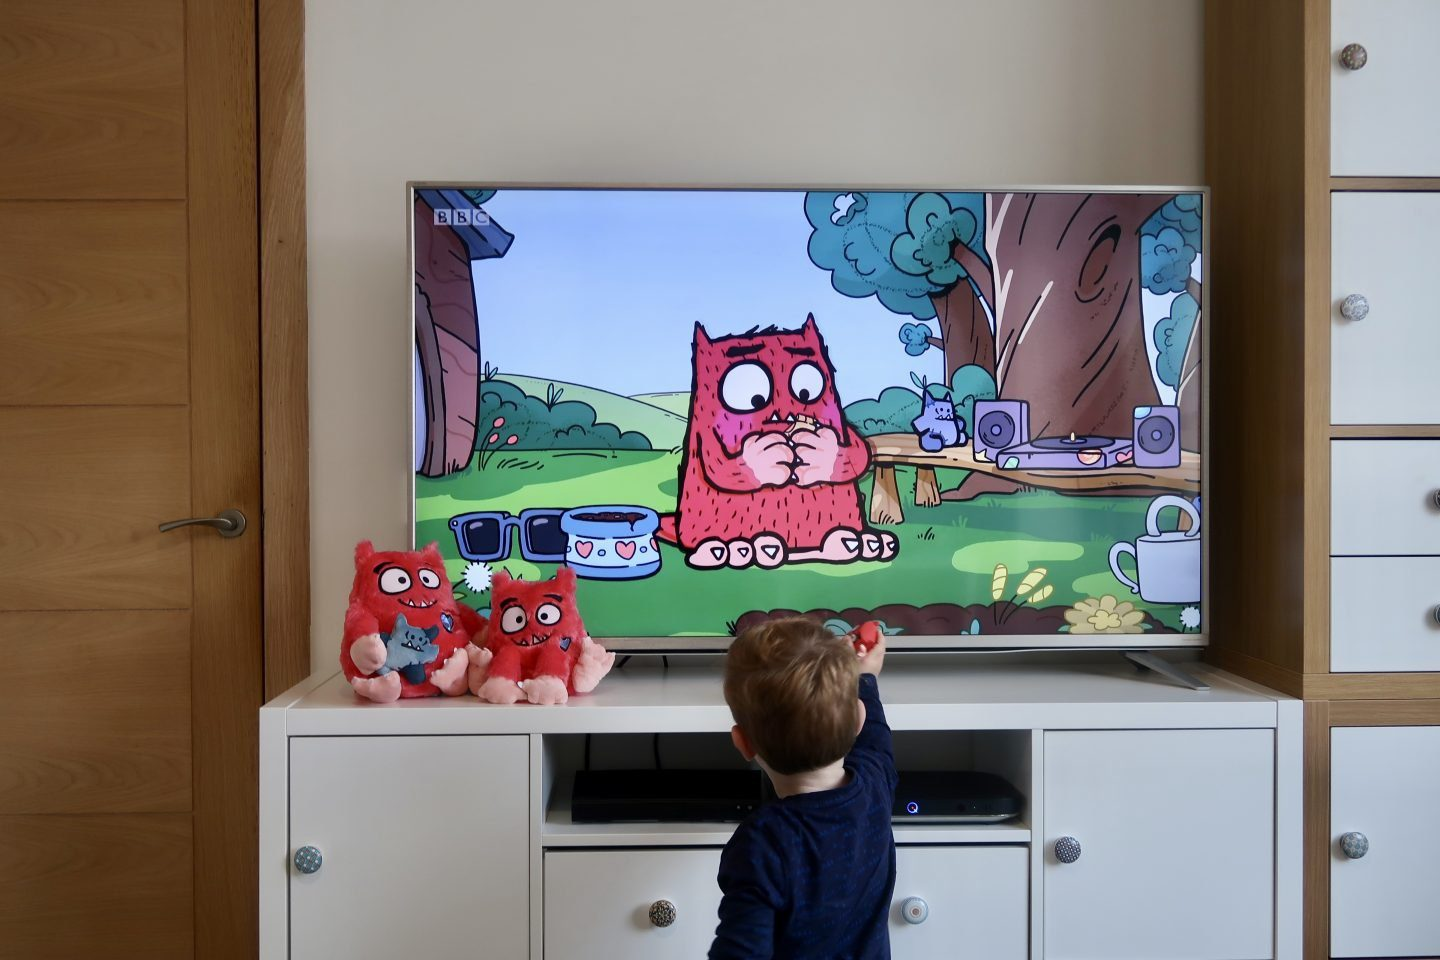 A TV playing Love Monster, with a little boy standing in front of it